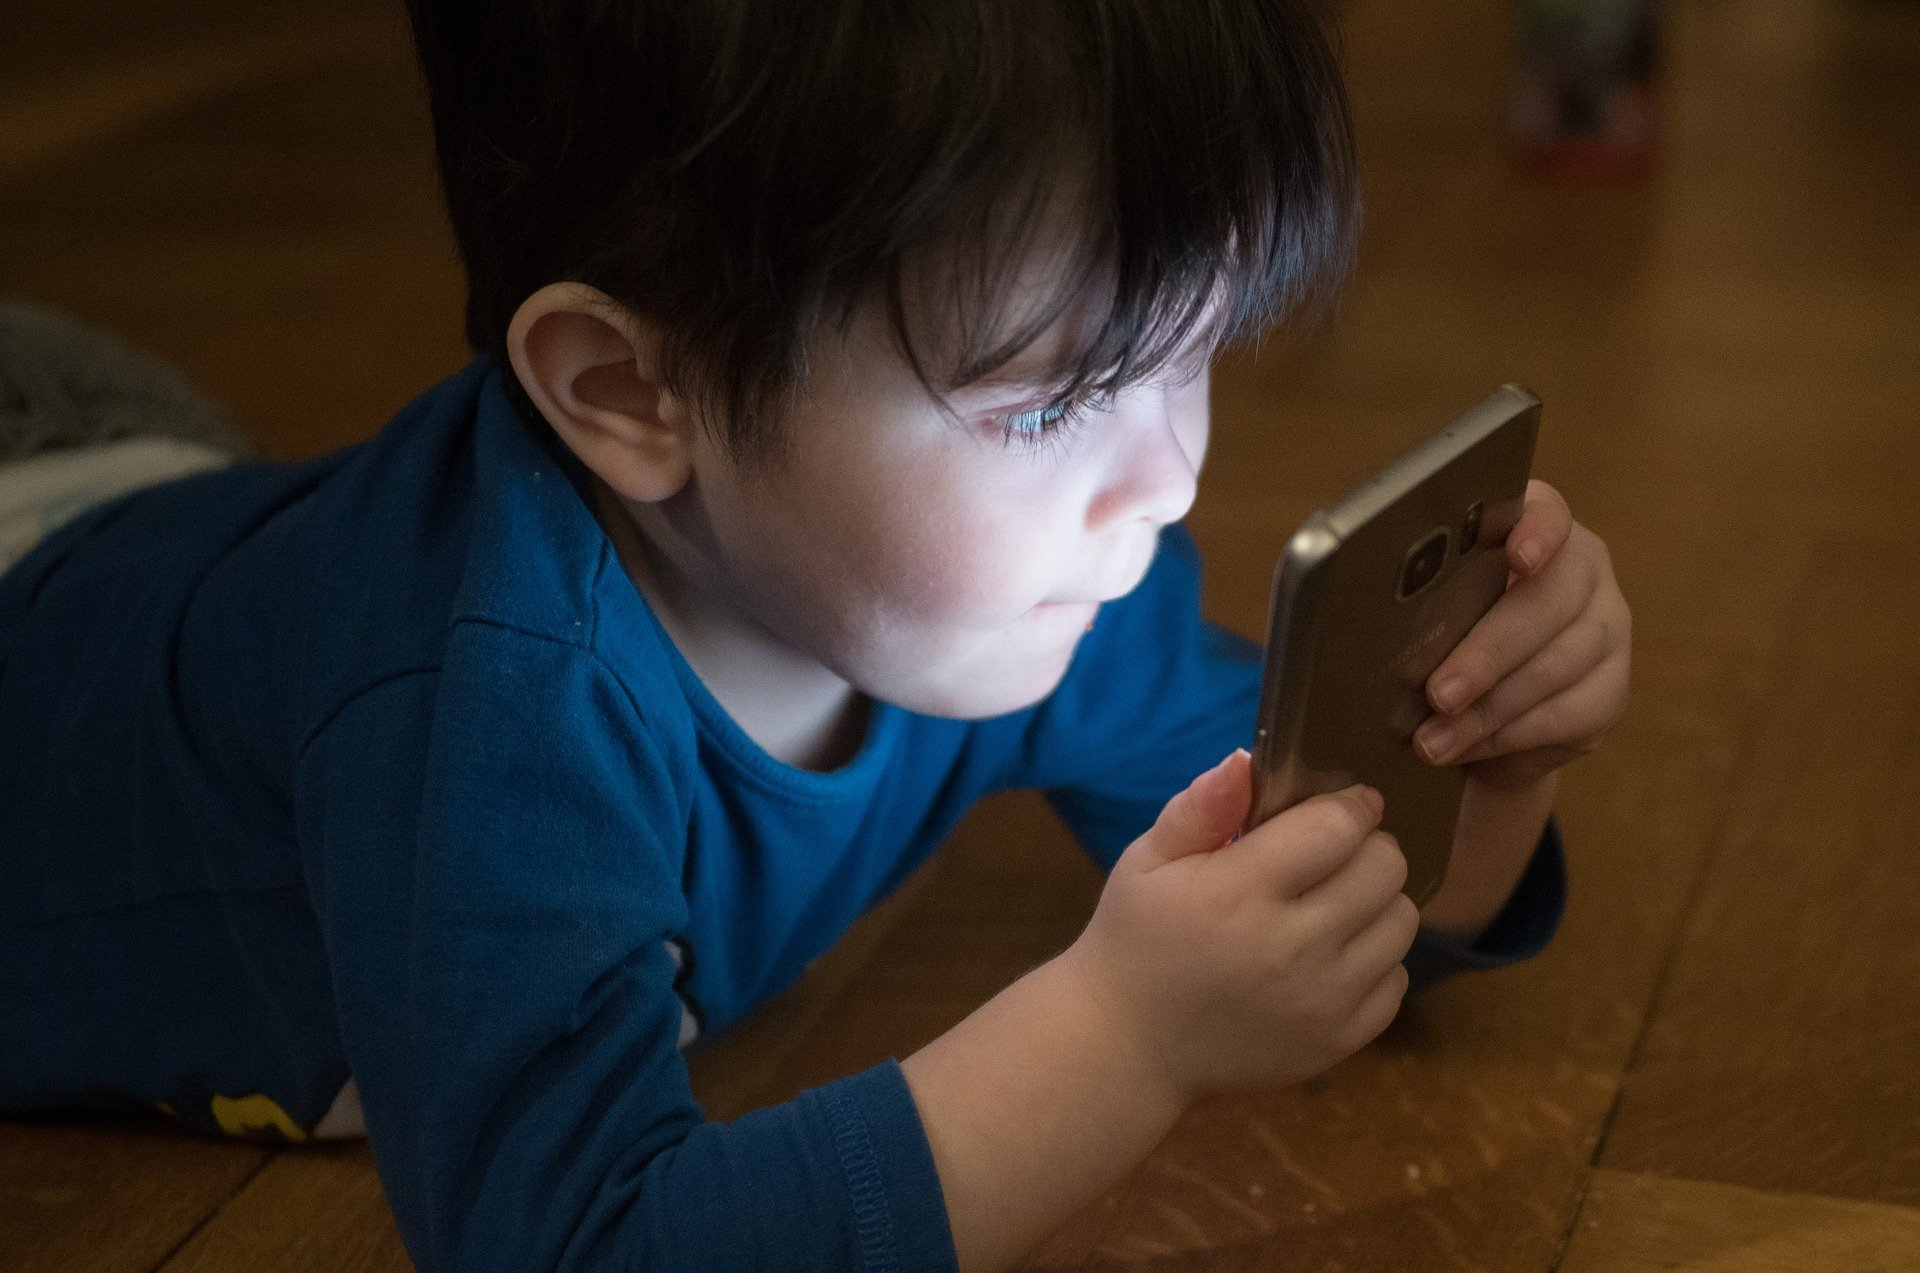 How to protect your children from costly in-app/game purchasing